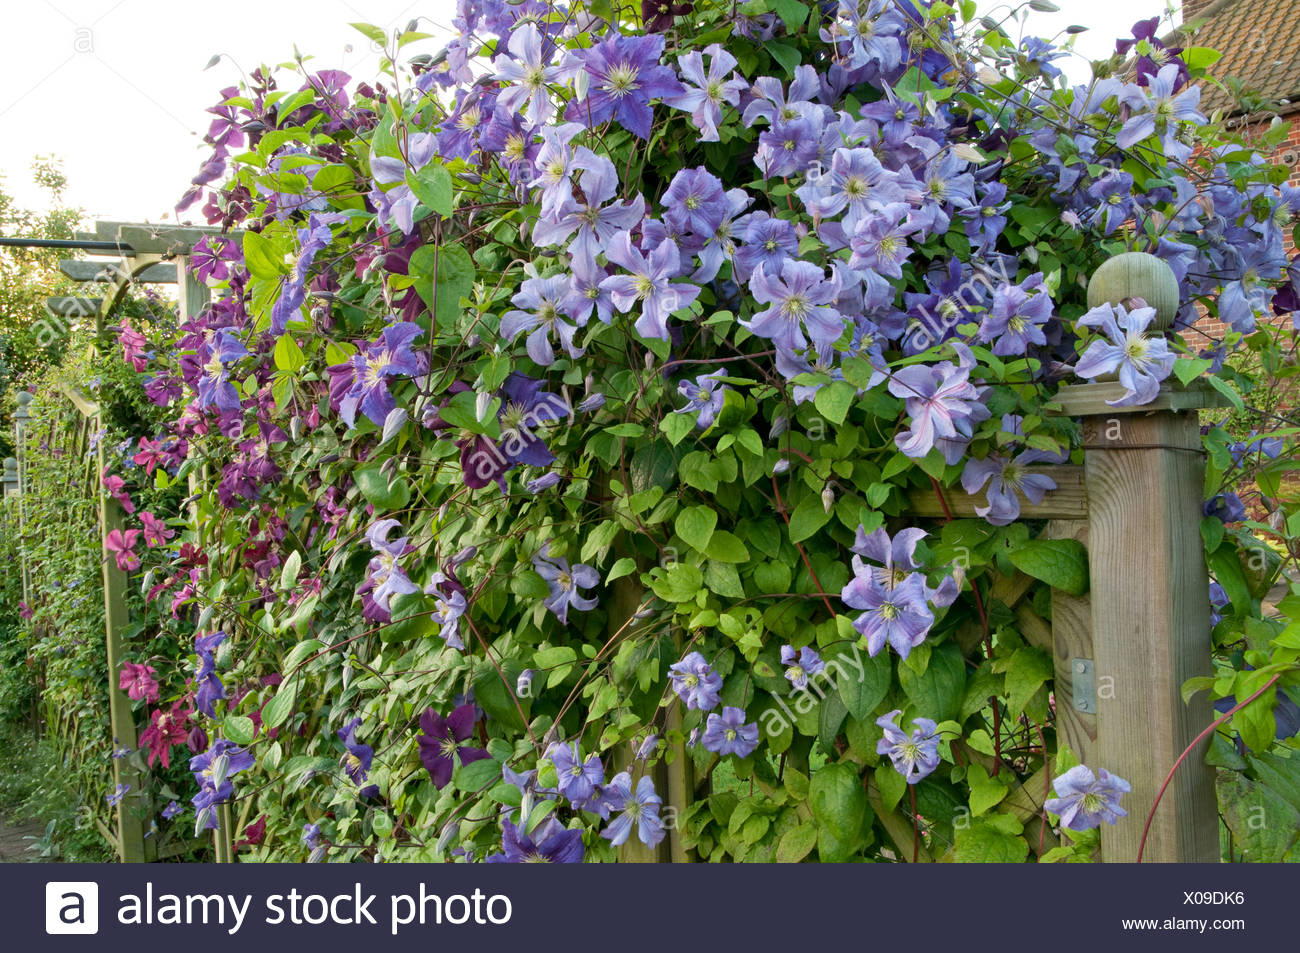 clematis prince charles stockfotos clematis prince charles bilder alamy. Black Bedroom Furniture Sets. Home Design Ideas